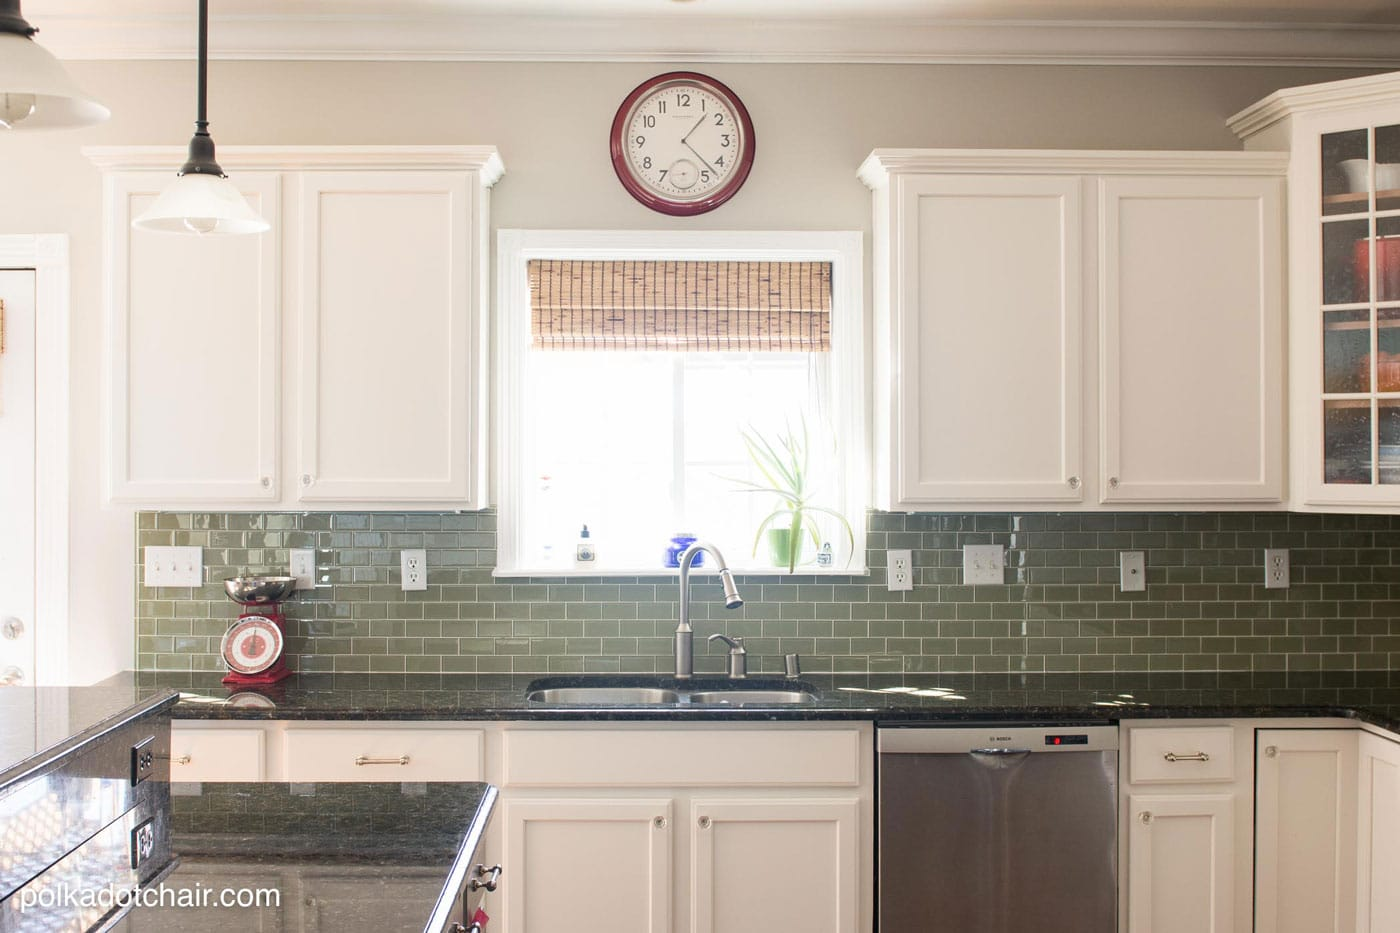 painted kitchen cabinet ideas kitchen makeover reveal kitchen cabinets ideas Before and After Photos of a Kitchen that had it s Cabinets Painted White lots of